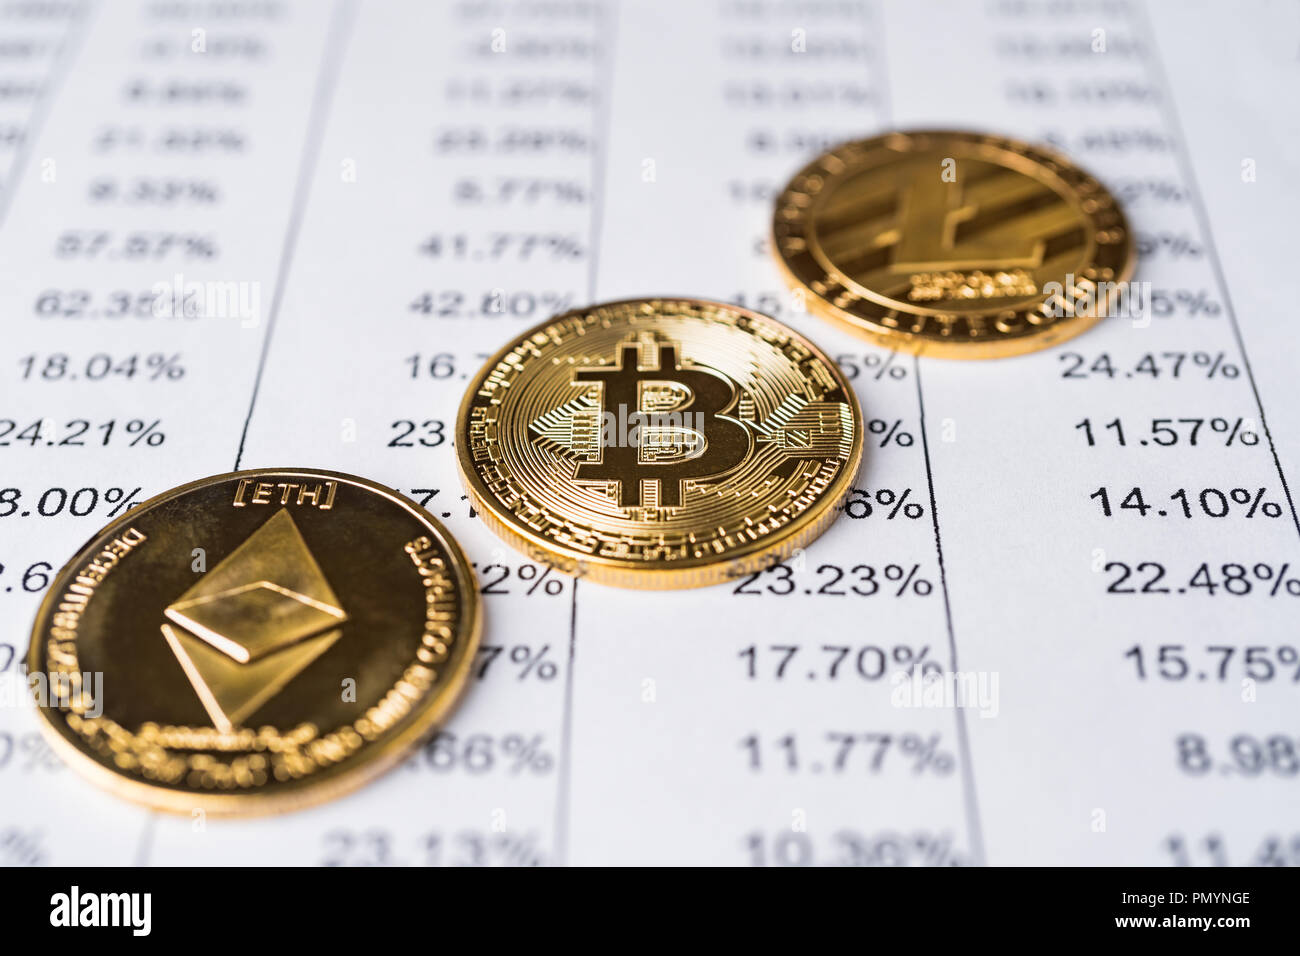 Gold physical Bitcoin, Litecoin and Ethereum coins on